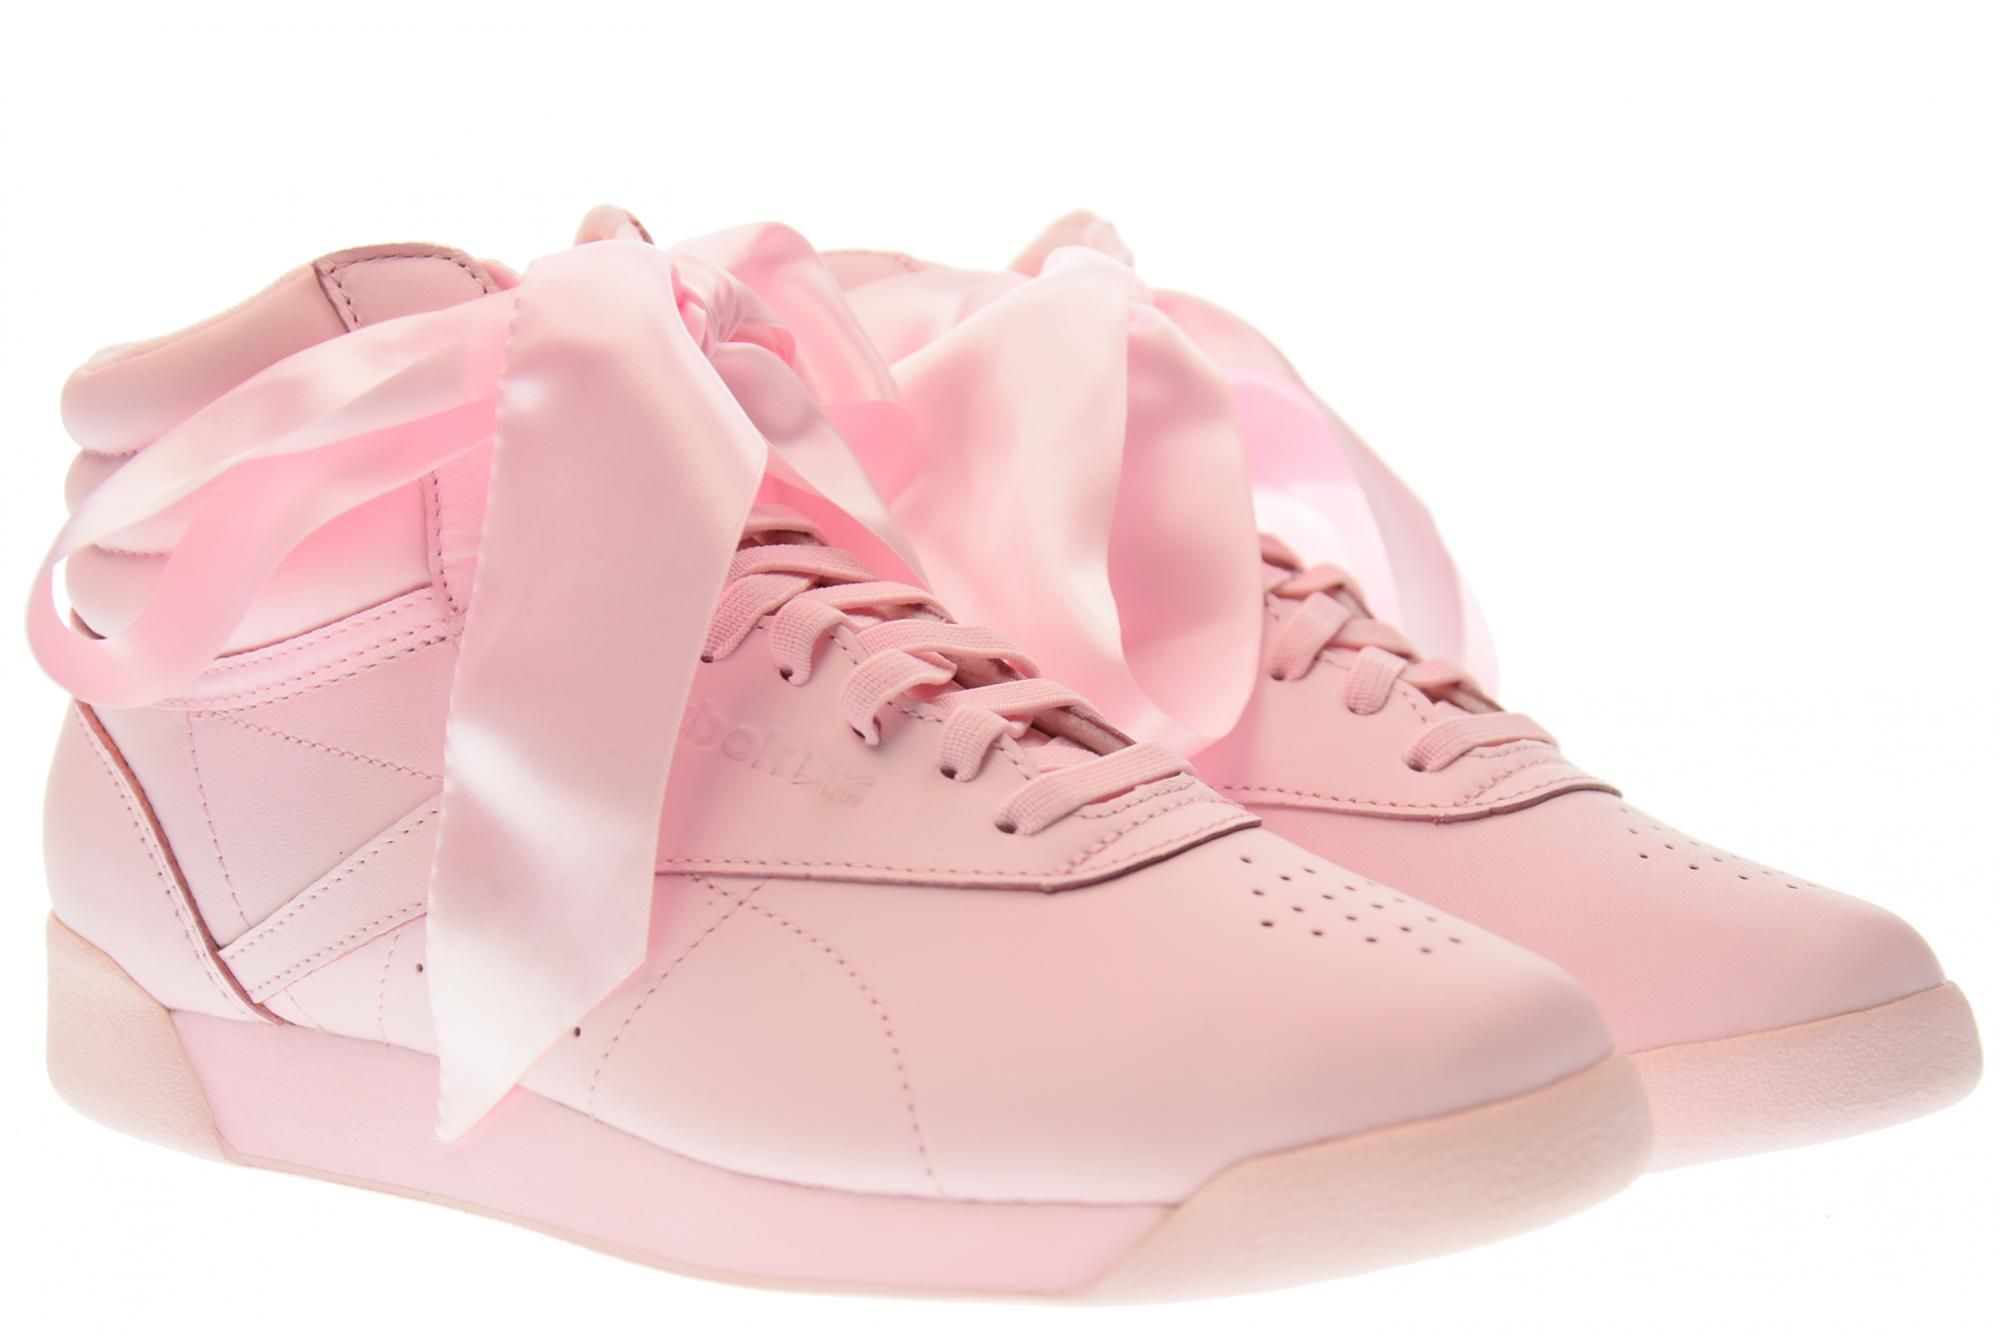 f0473a2a70196 Details about Reebok P18u shoes woman high sneakers CM8905 F / S HI SATIN  BOW